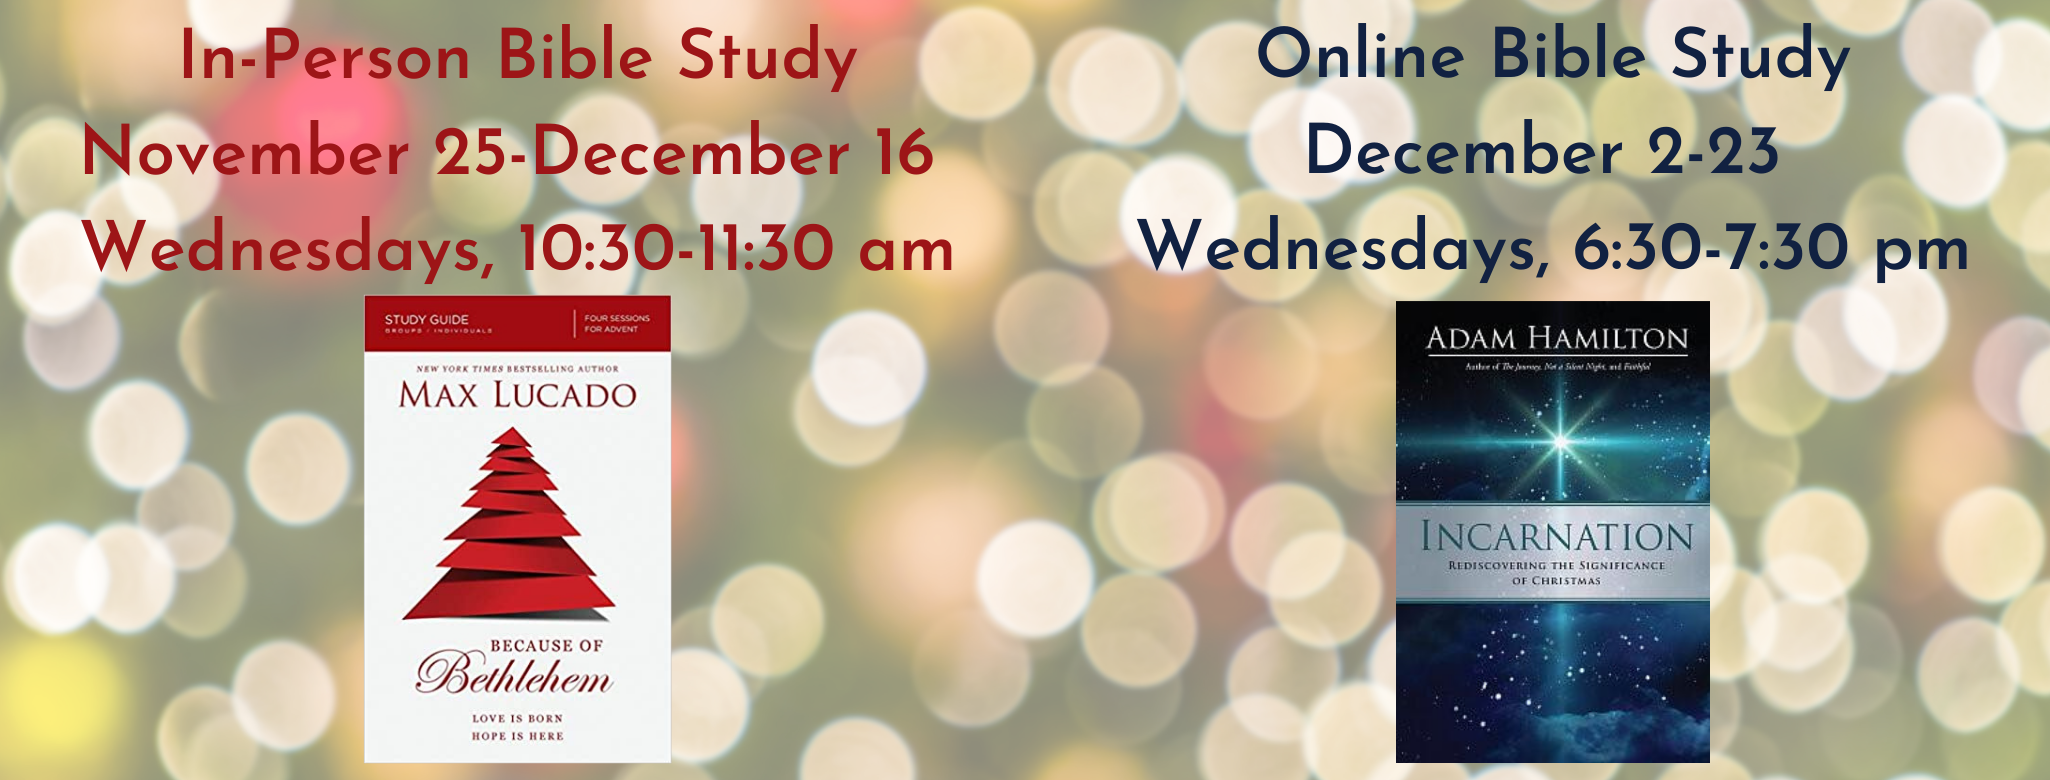 In-Person Bible Study November 25-December 16 Wednesdays, 10_30-11_30 am